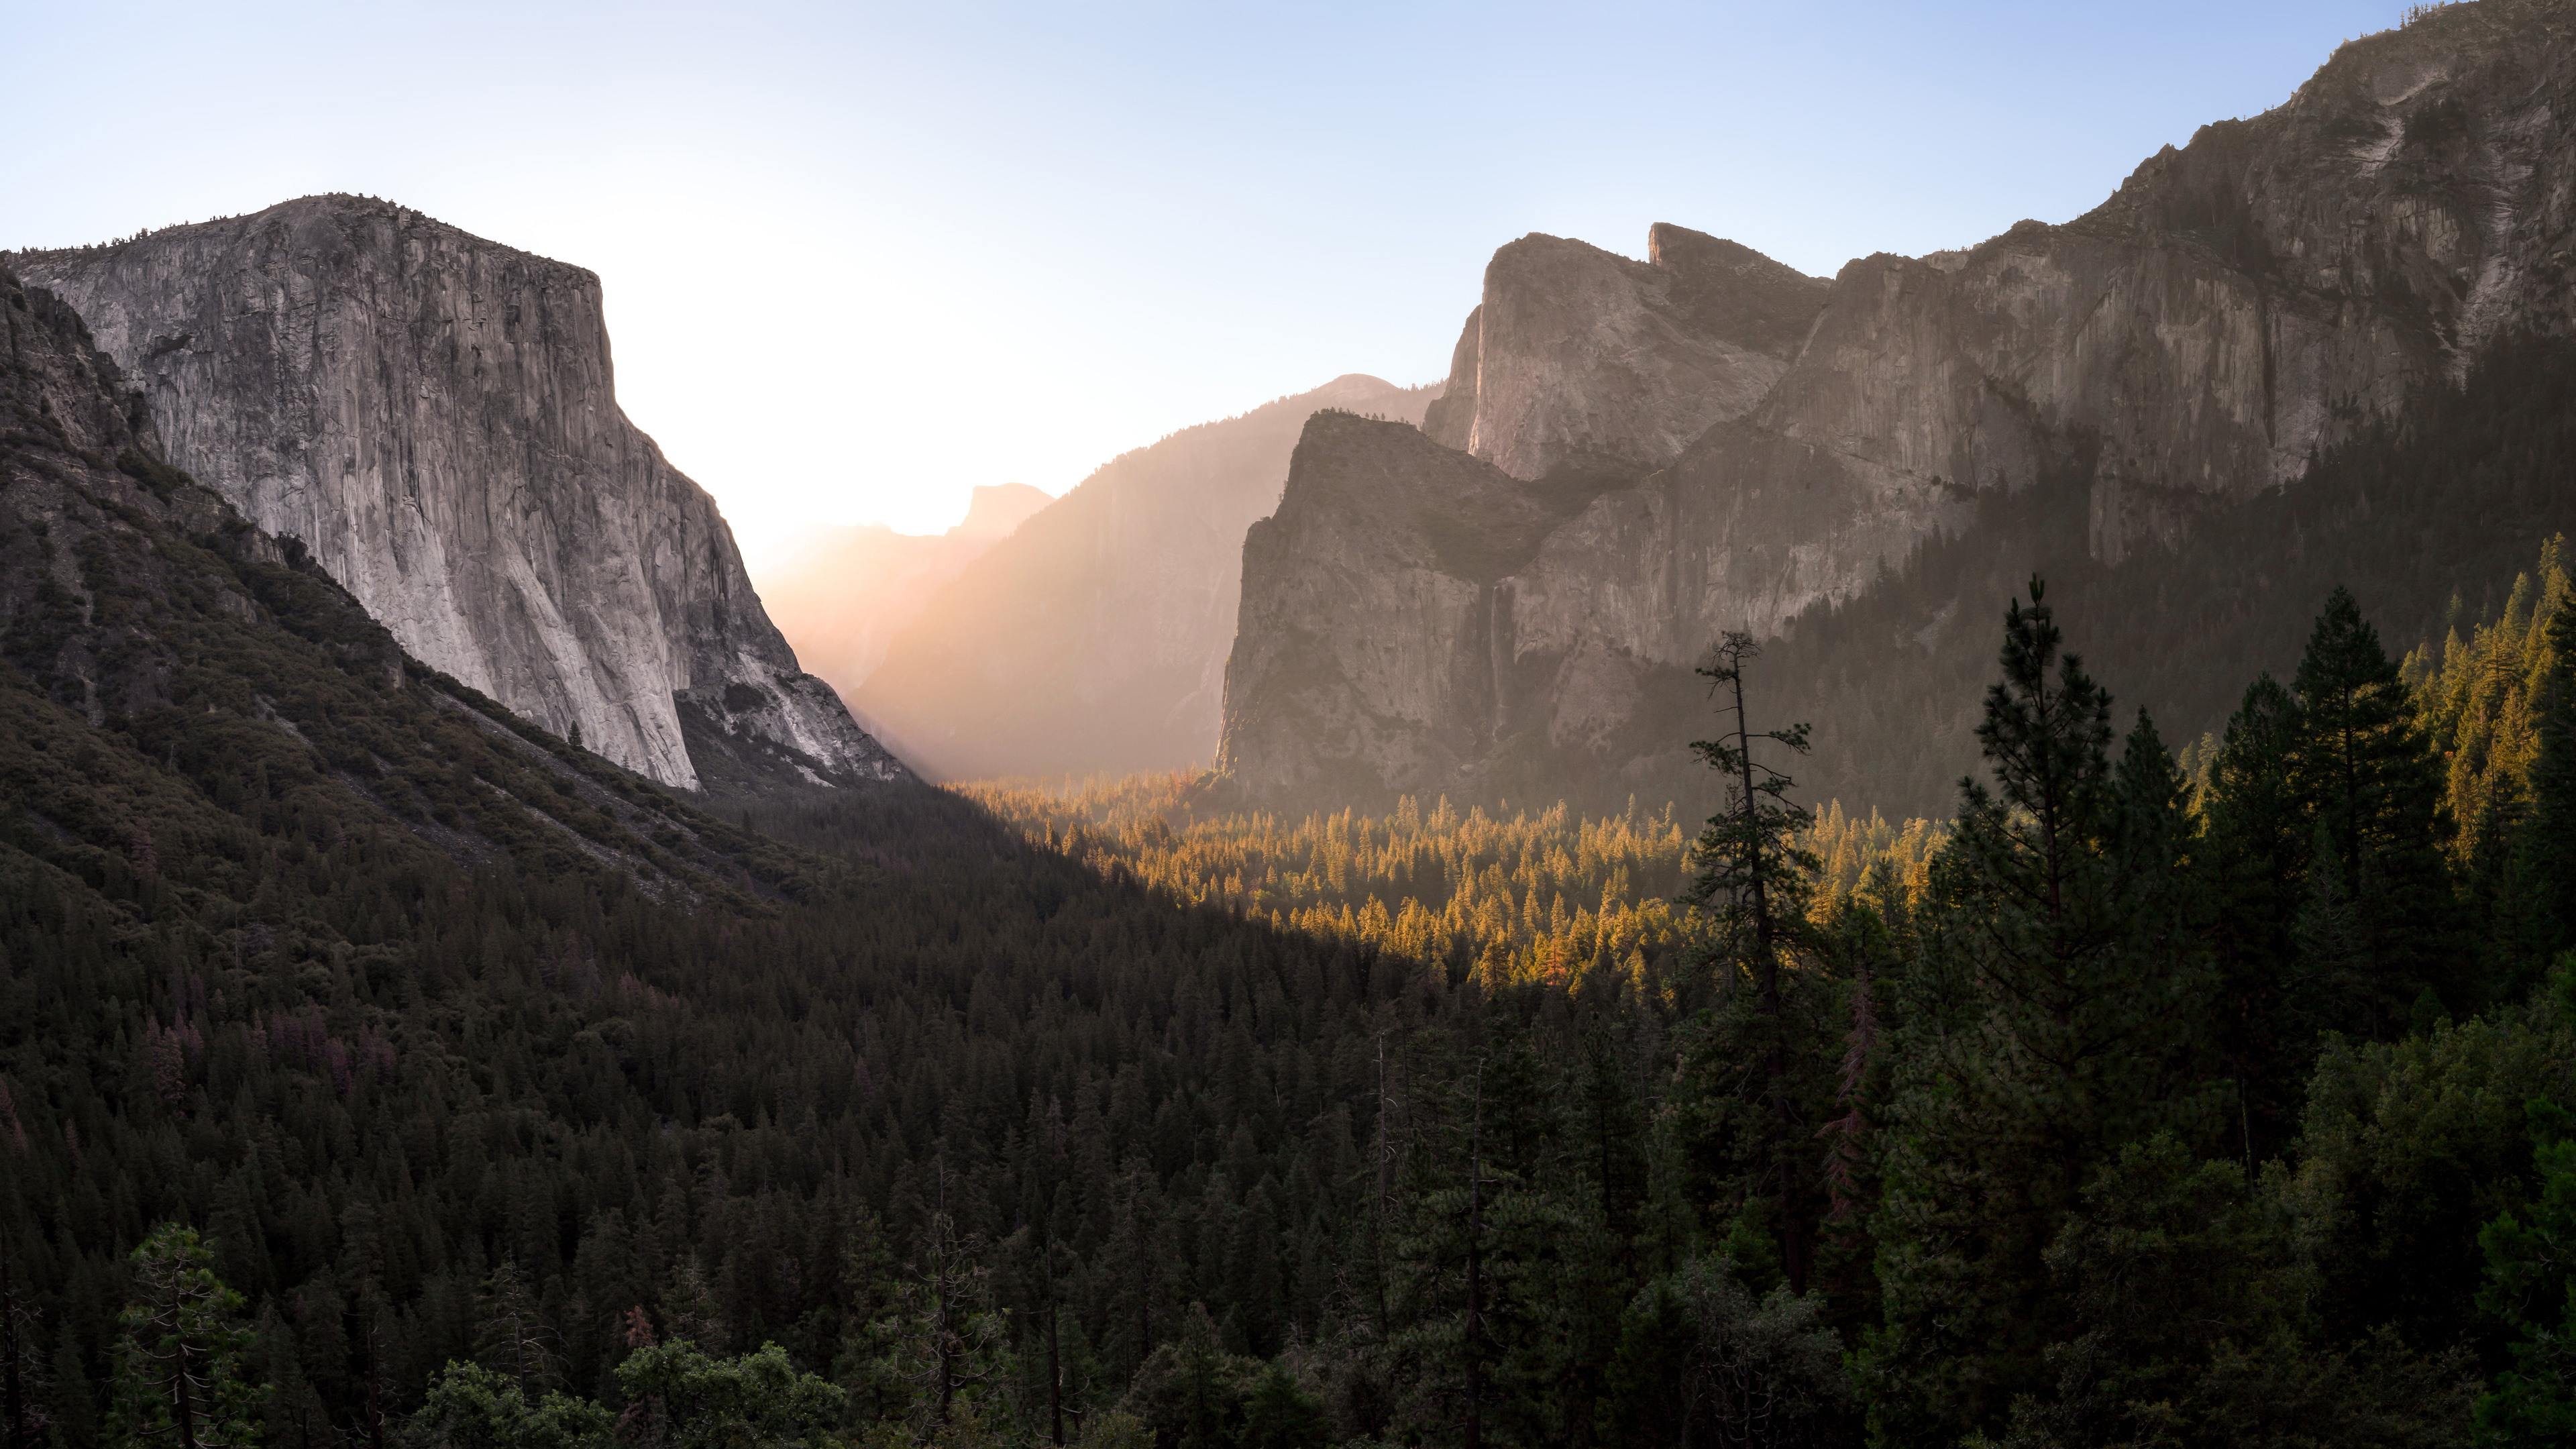 Yosemite valley 4k hd nature 4k wallpapers images - Yosemite national park hd wallpaper ...